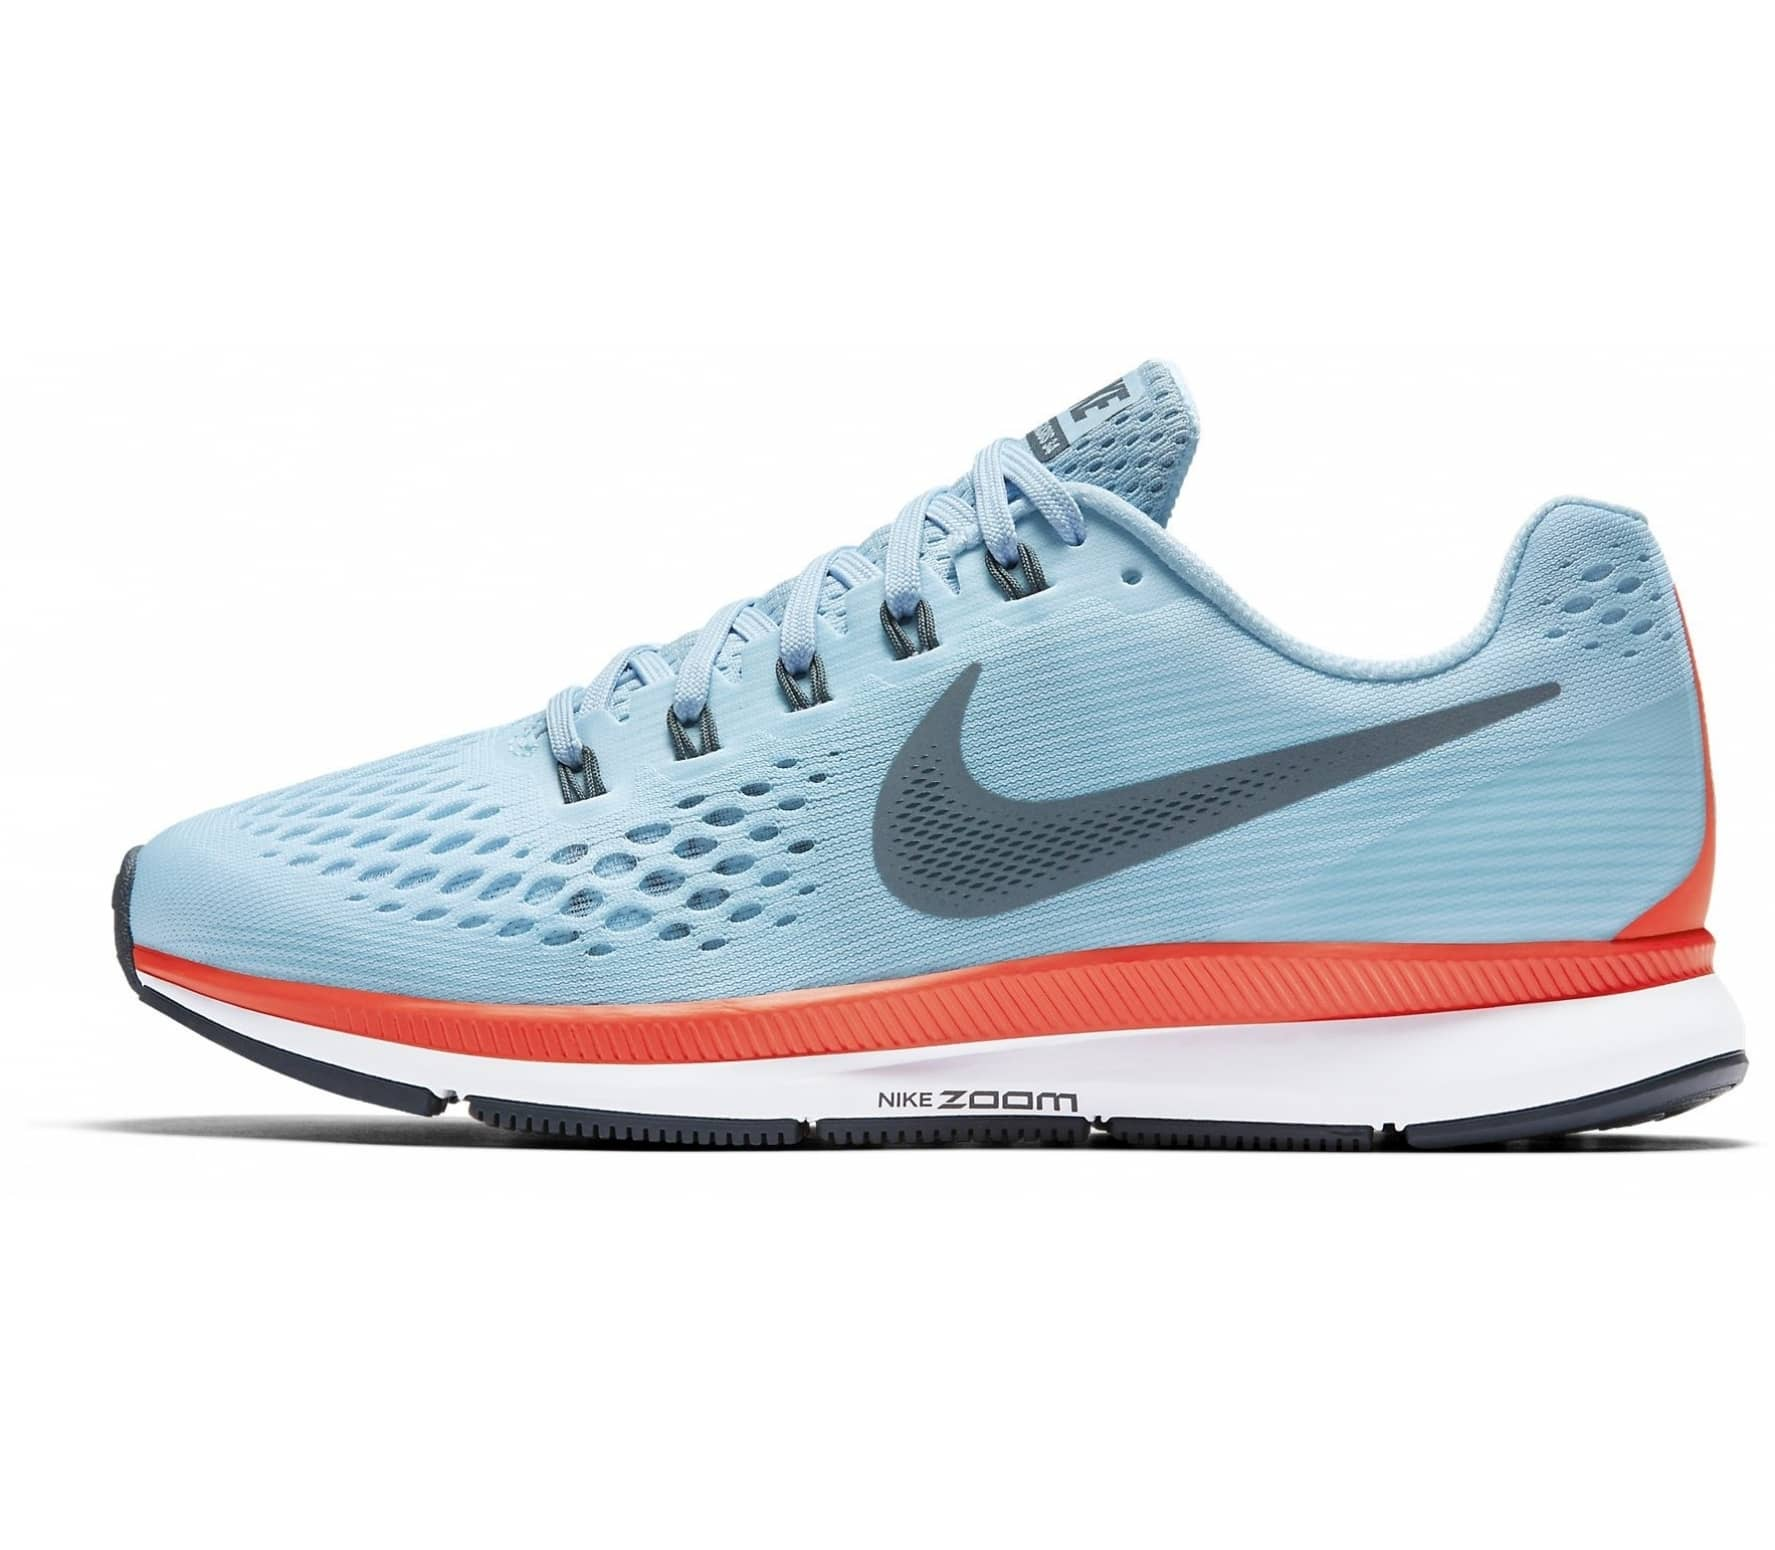 4932891f916 Nike - Air Zoom Pegasus 34 women s running shoes (light blue) - buy ...